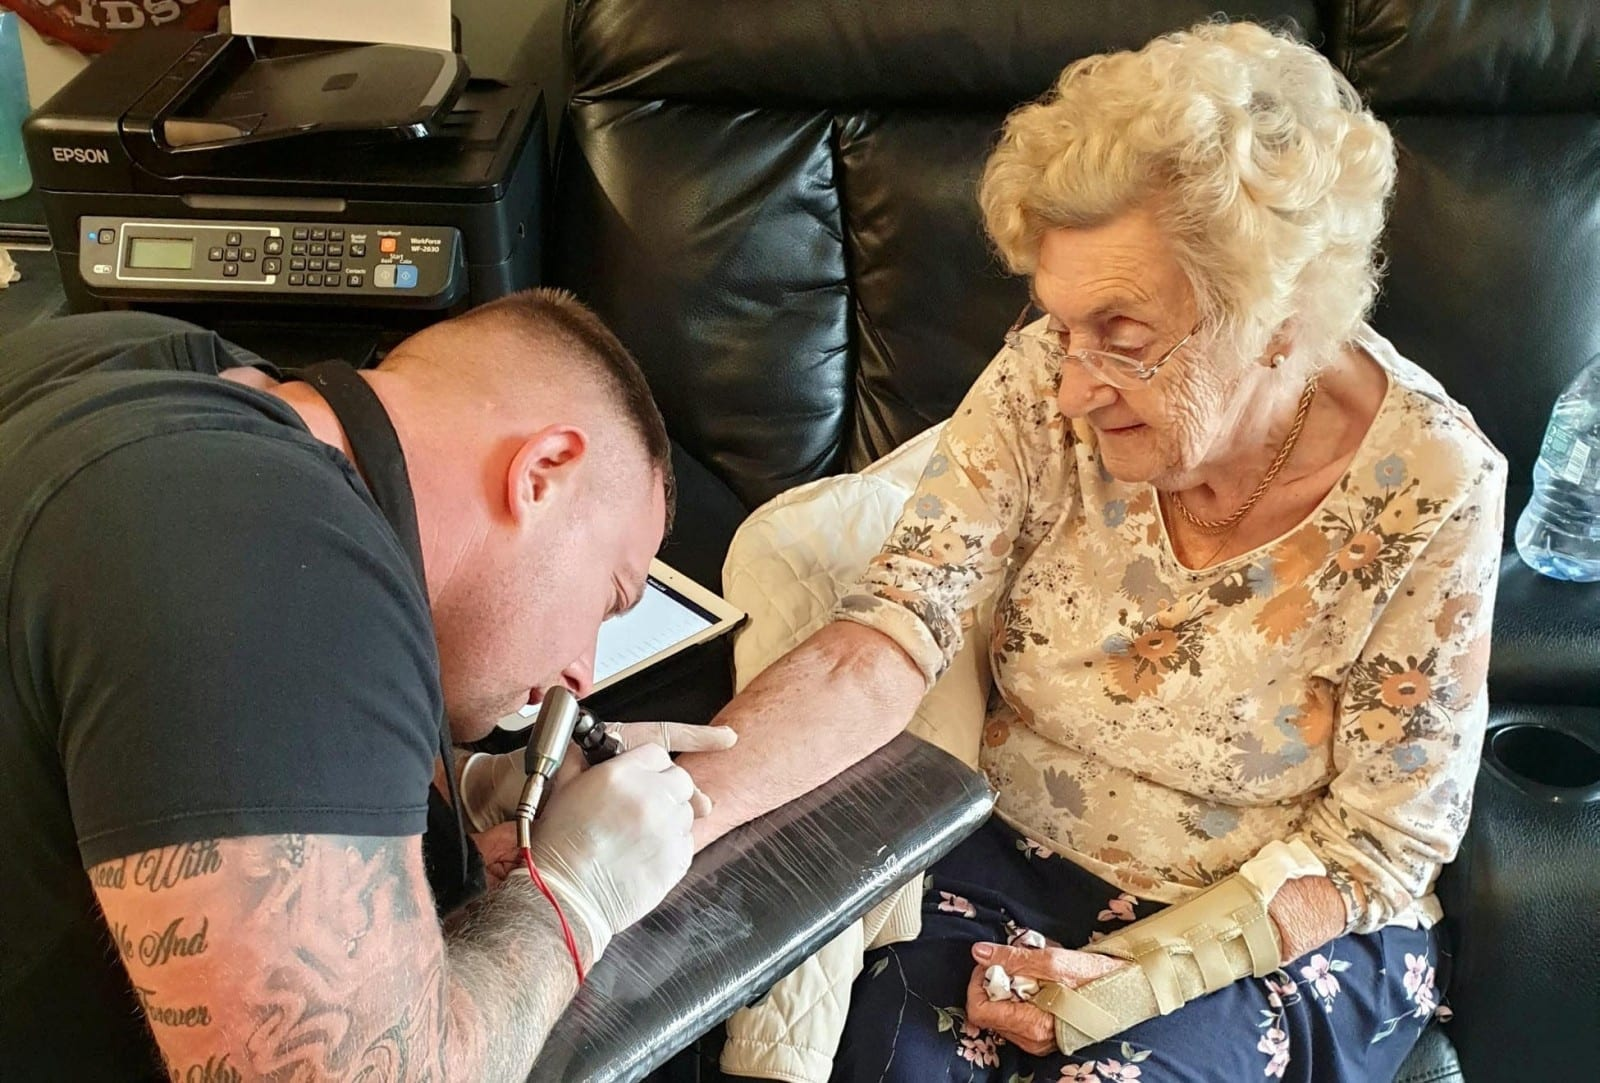 Great-Gran Believed To Be The Oldest Woman In The UK To Have A Tattoo After She got Inked Up – AGED 94